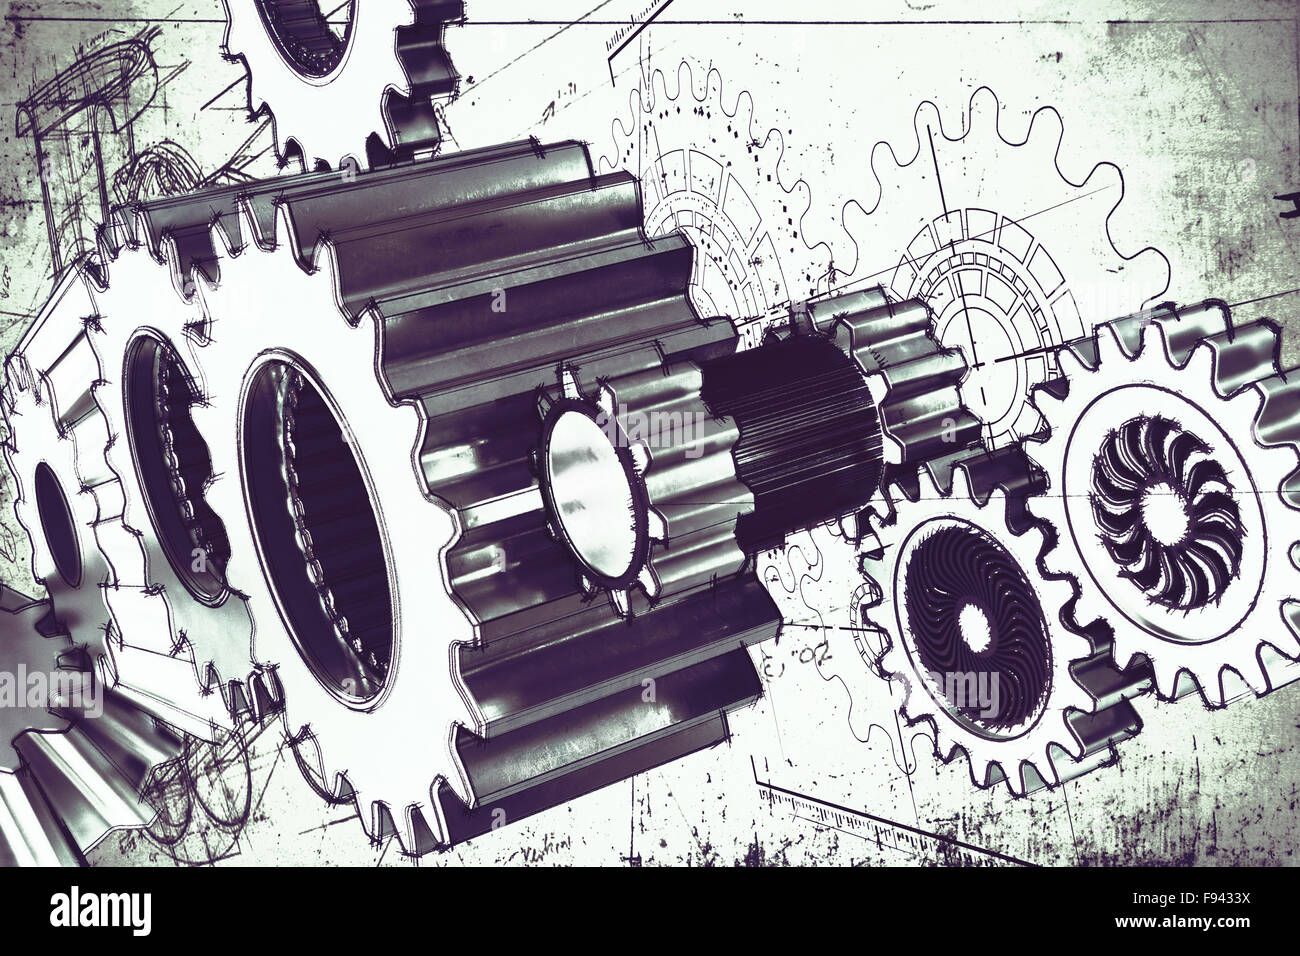 System of gear - Stock Image